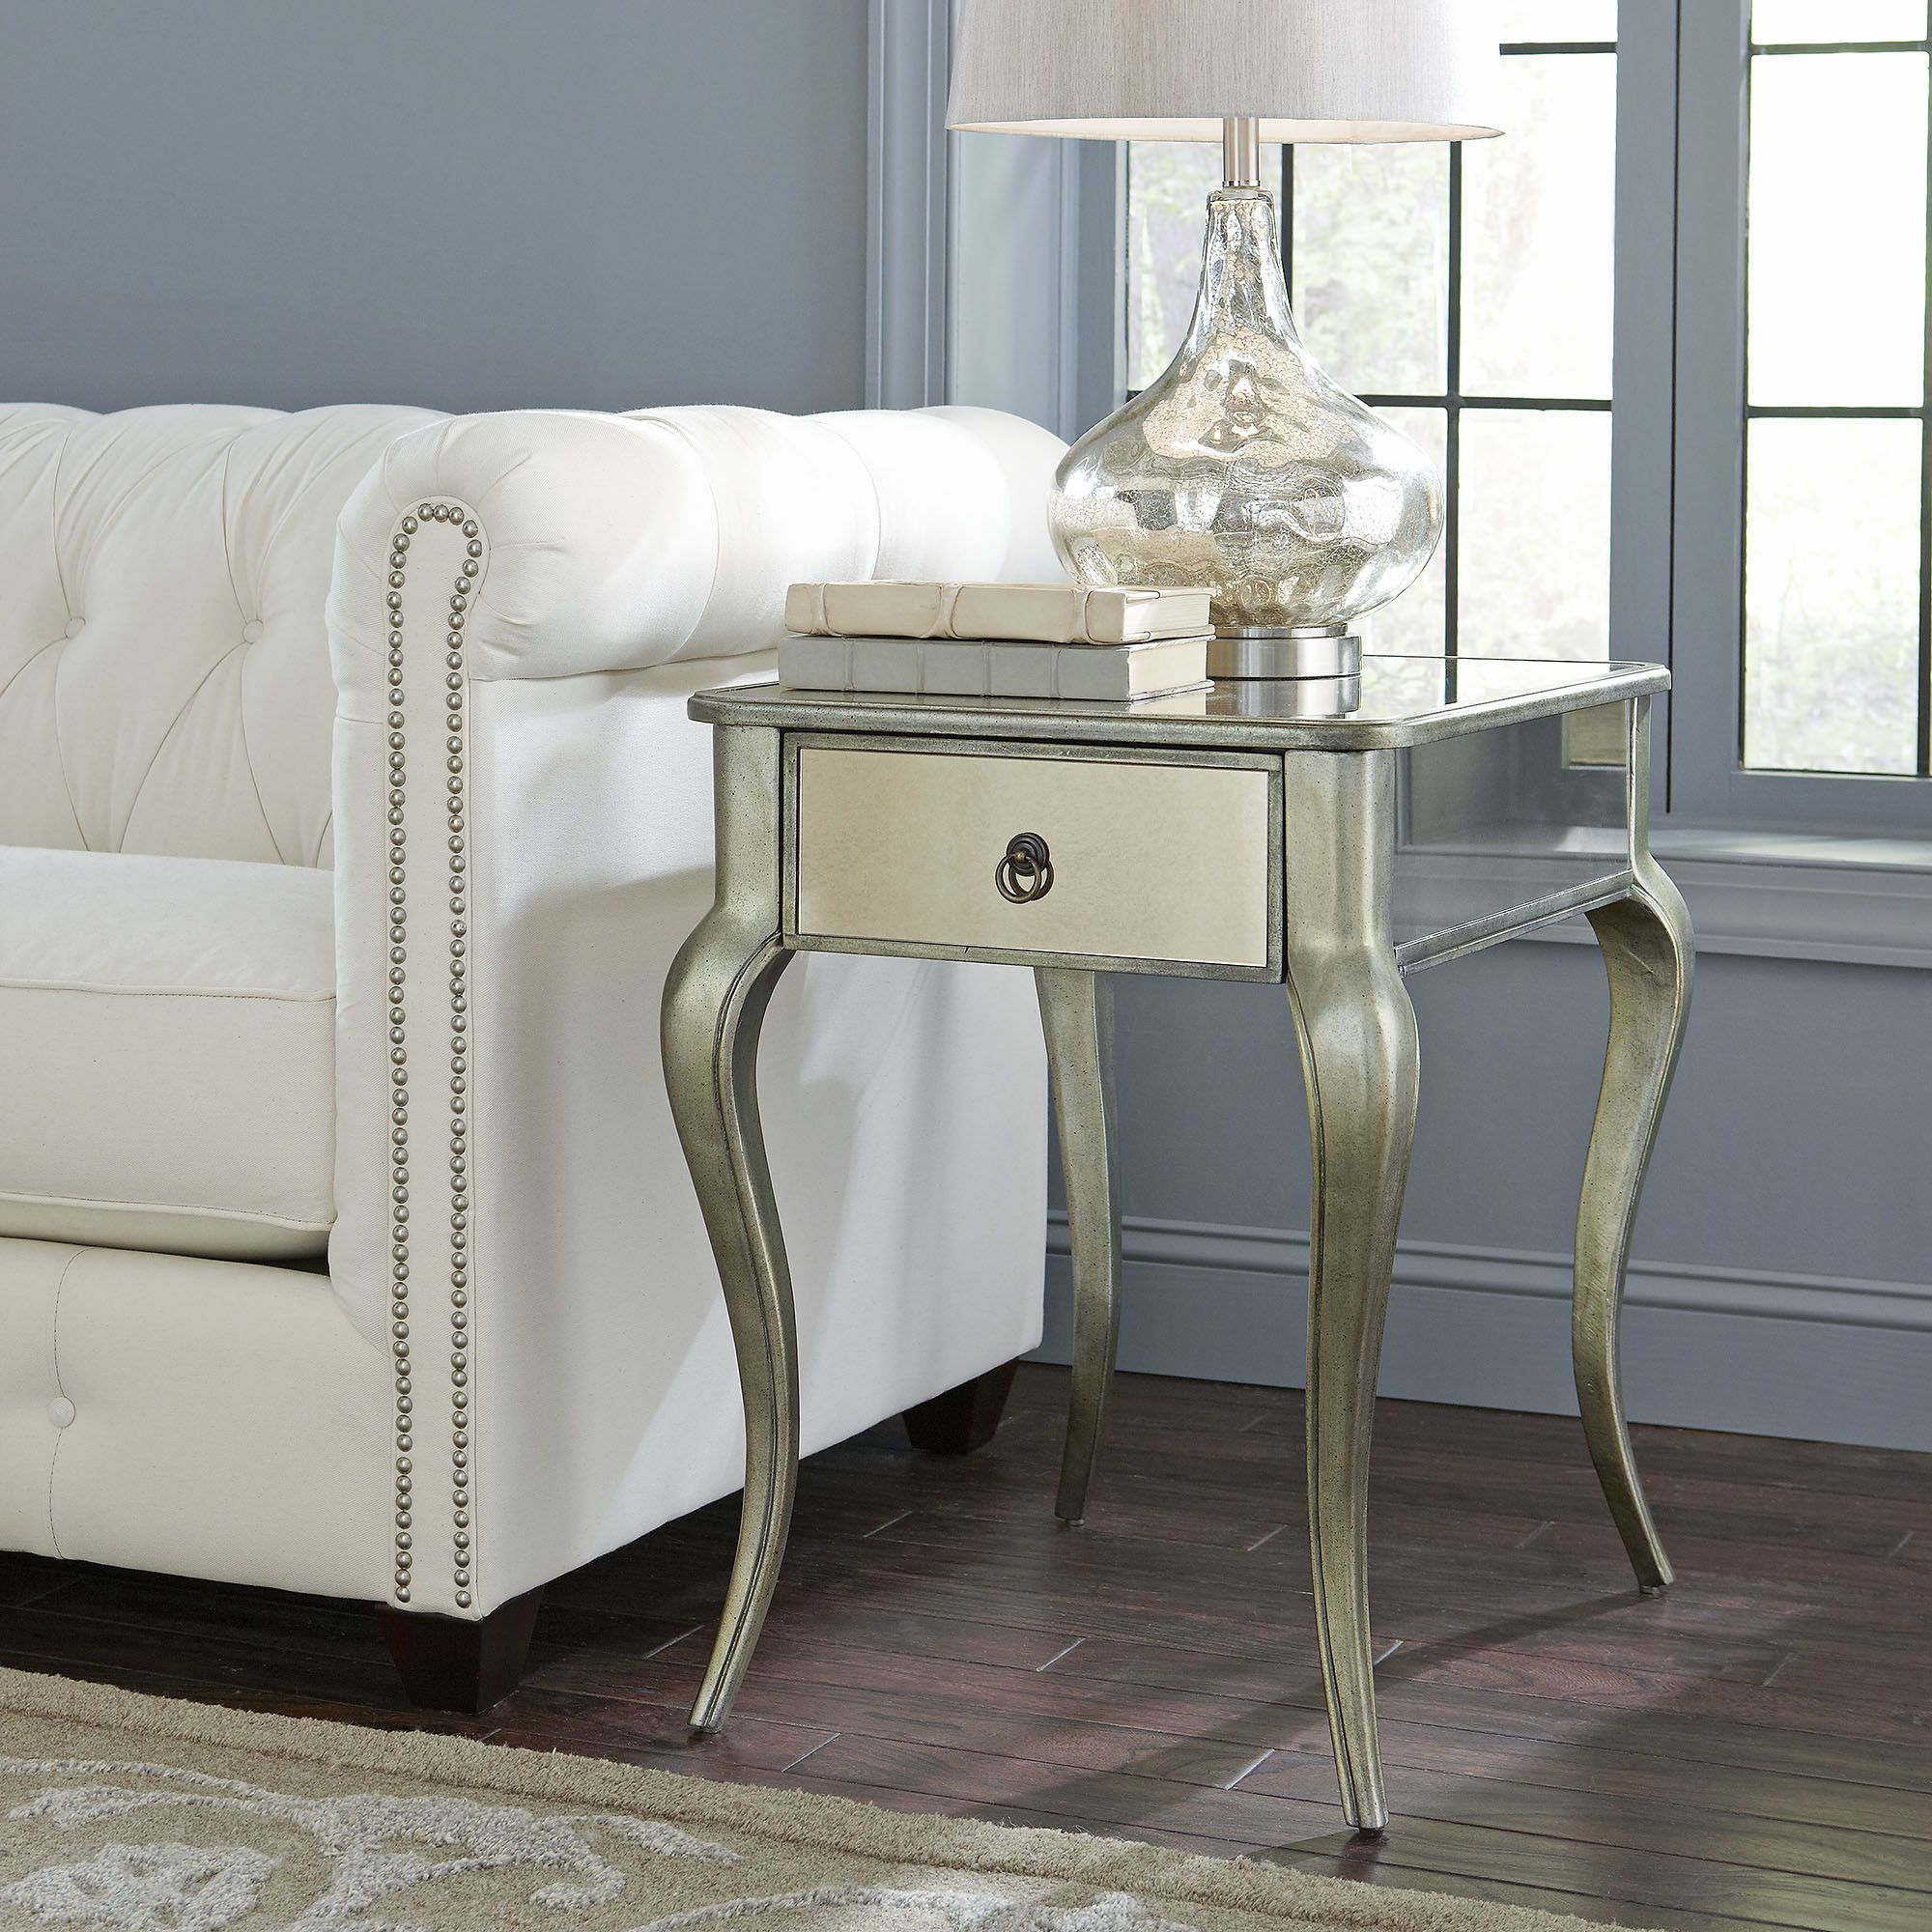 marissa mirrored side table living room ideas small accent tables under round brass and glass coffee fruit cocktail recipe antique dining wood unfinished desk legs chippendale